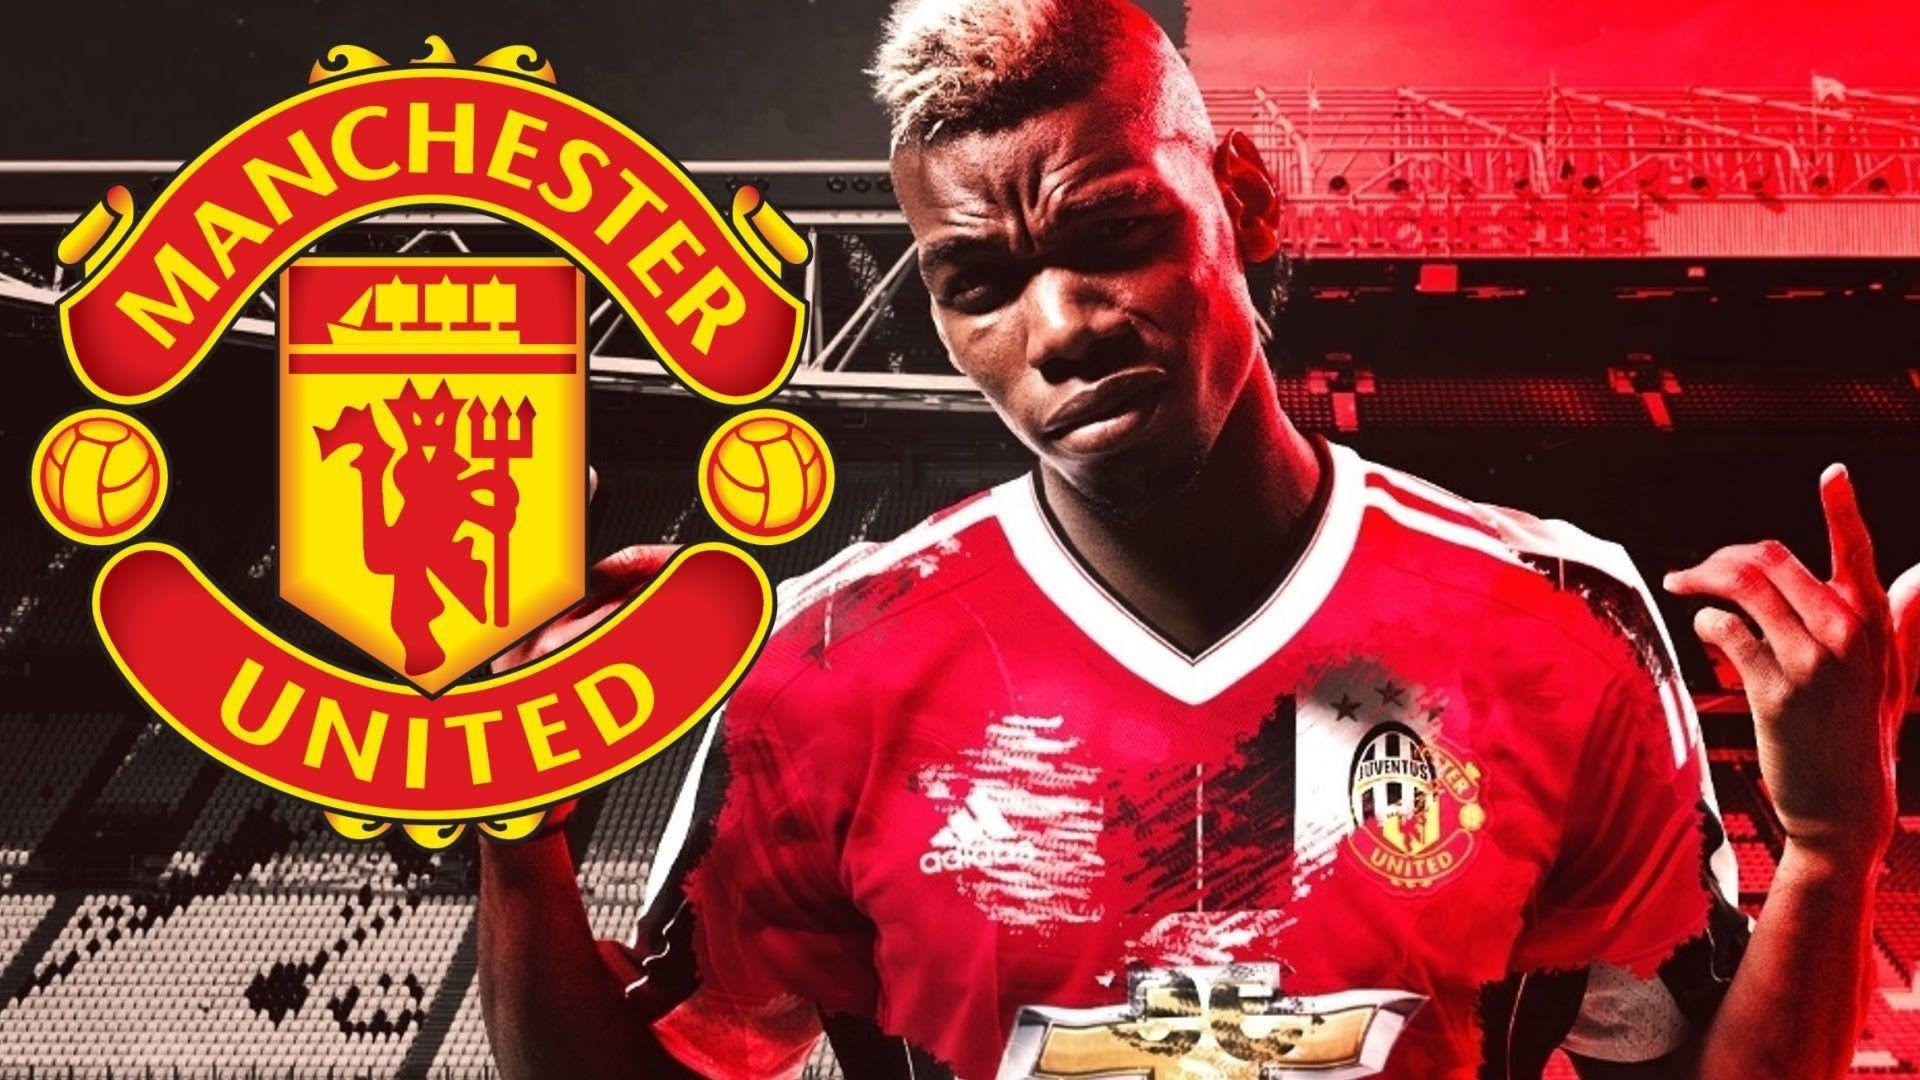 Paul pogba manchester united wallpapers wallpaper cave - Cool man united wallpapers ...